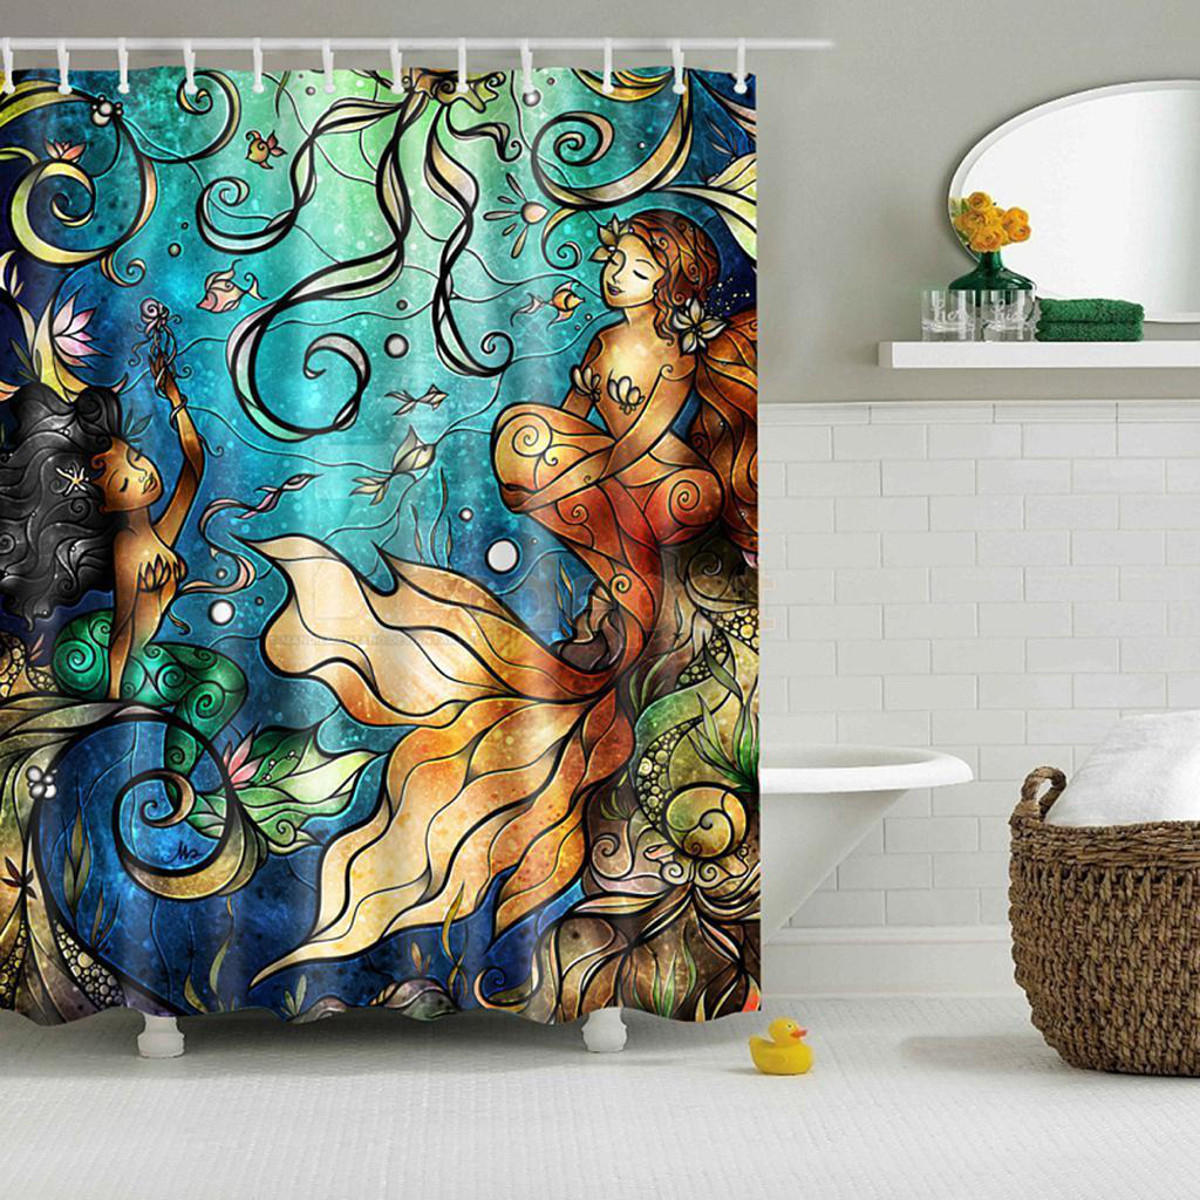 Mermaid Scale Shower Curtain Waterproof Mermaid Scenery Pattern Fabric Shower Curtain Panel Sheer 180 X 180cm